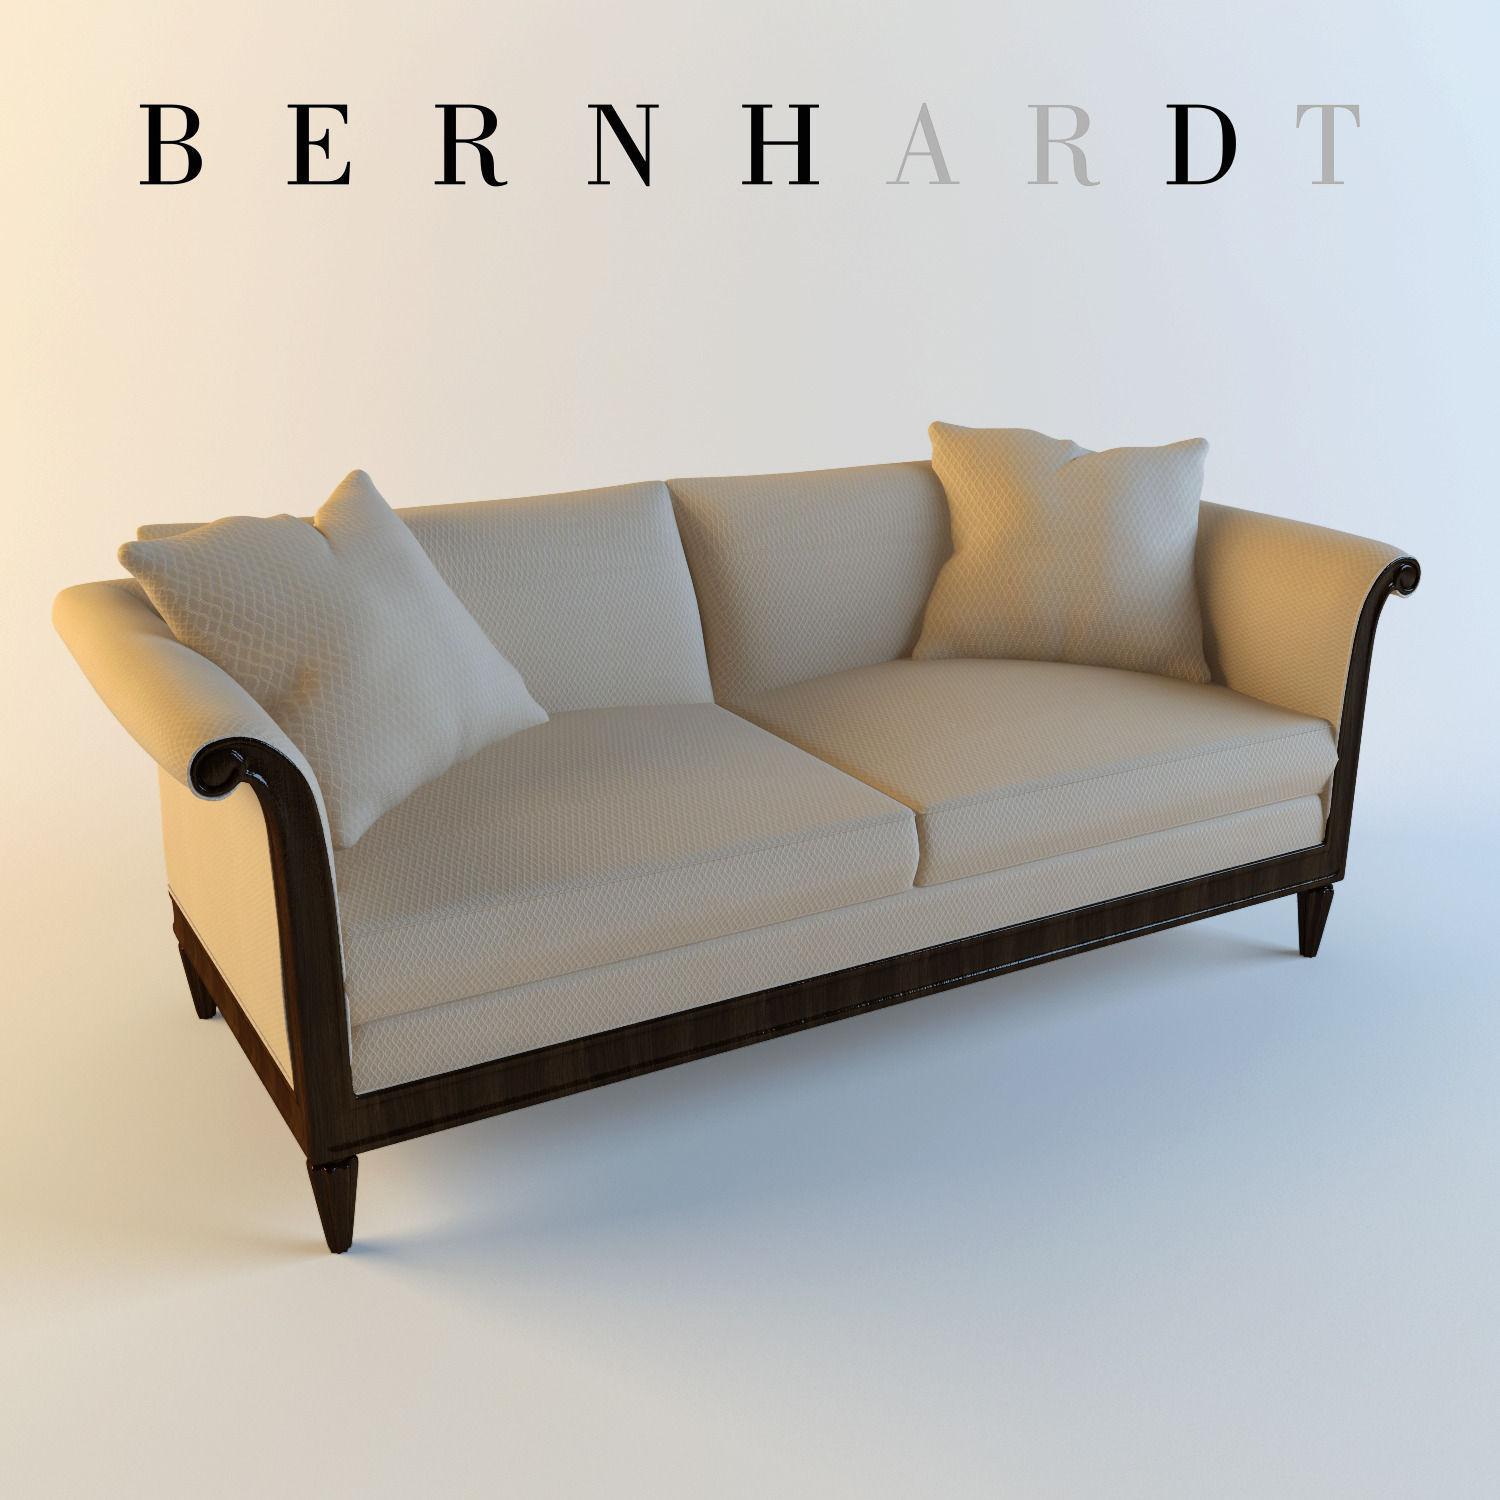 Amazing Bernhardt Beckett Sofa Leather Sectional Sofa Download Free Architecture Designs Rallybritishbridgeorg